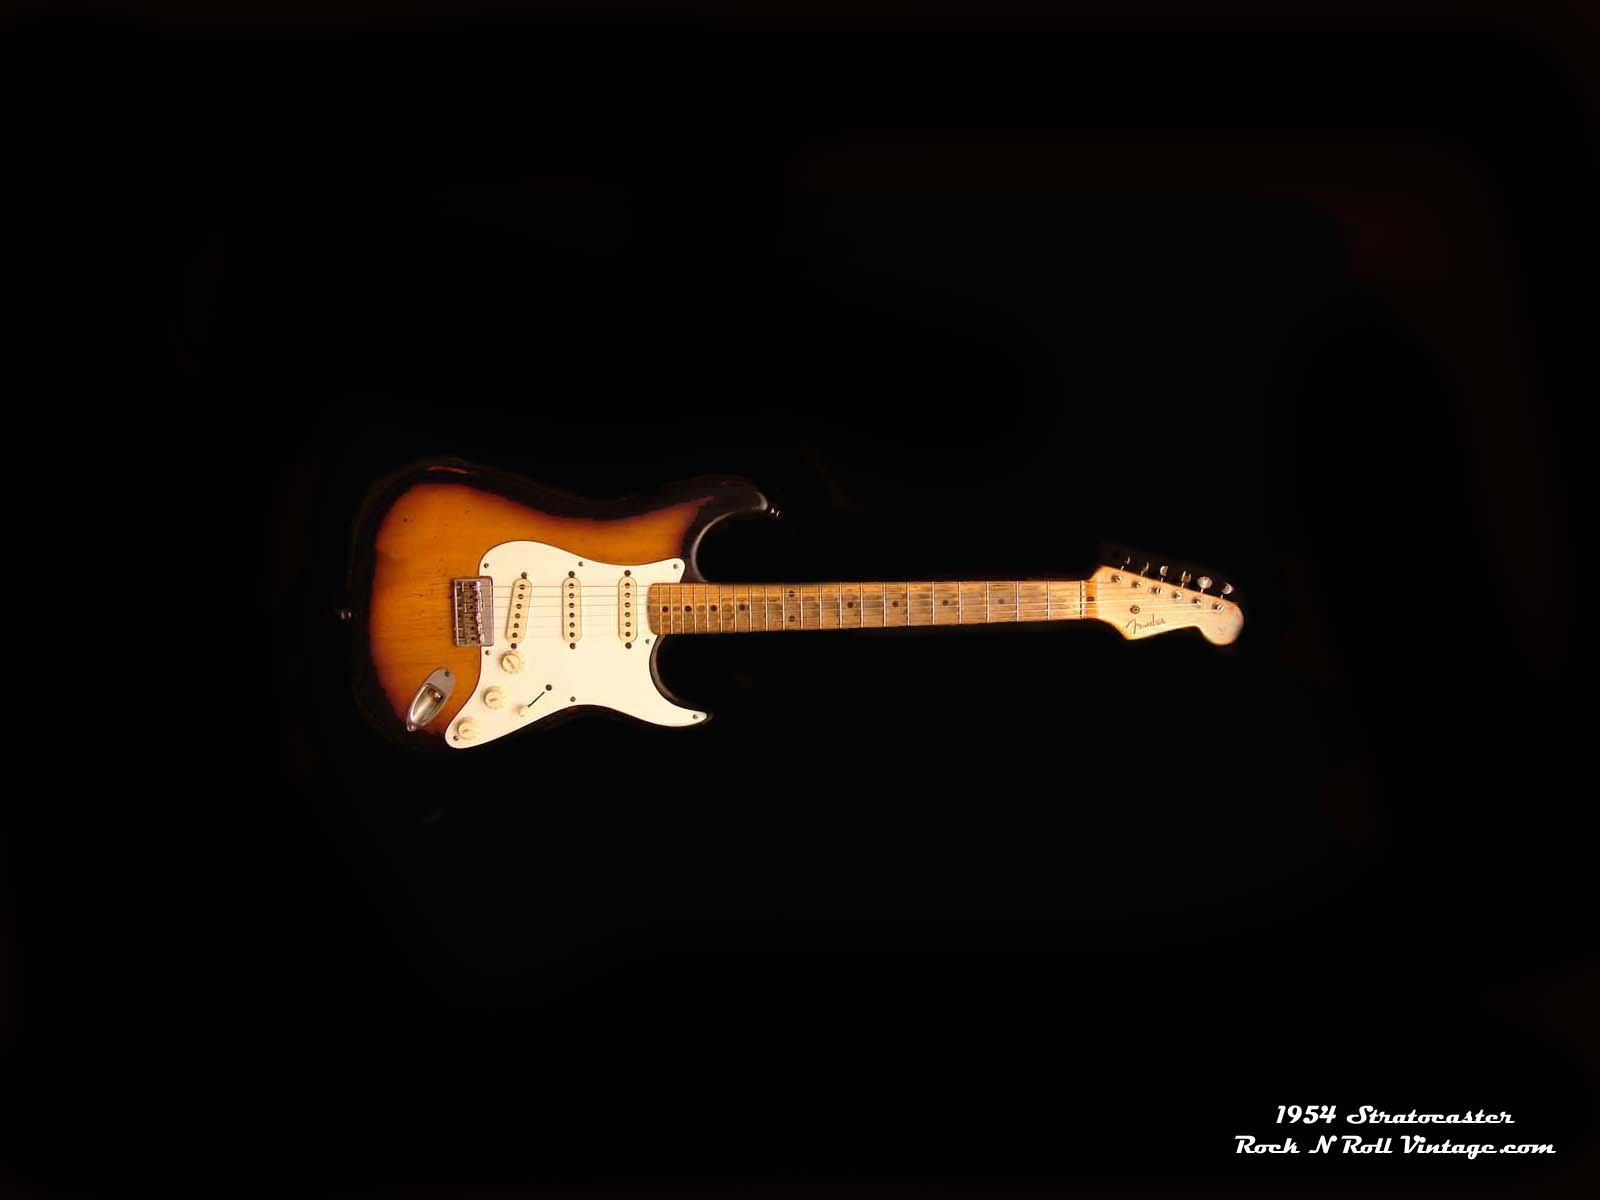 Free guitar screensavers and wallpaper wallpapersafari - Fender stratocaster wallpaper hd ...